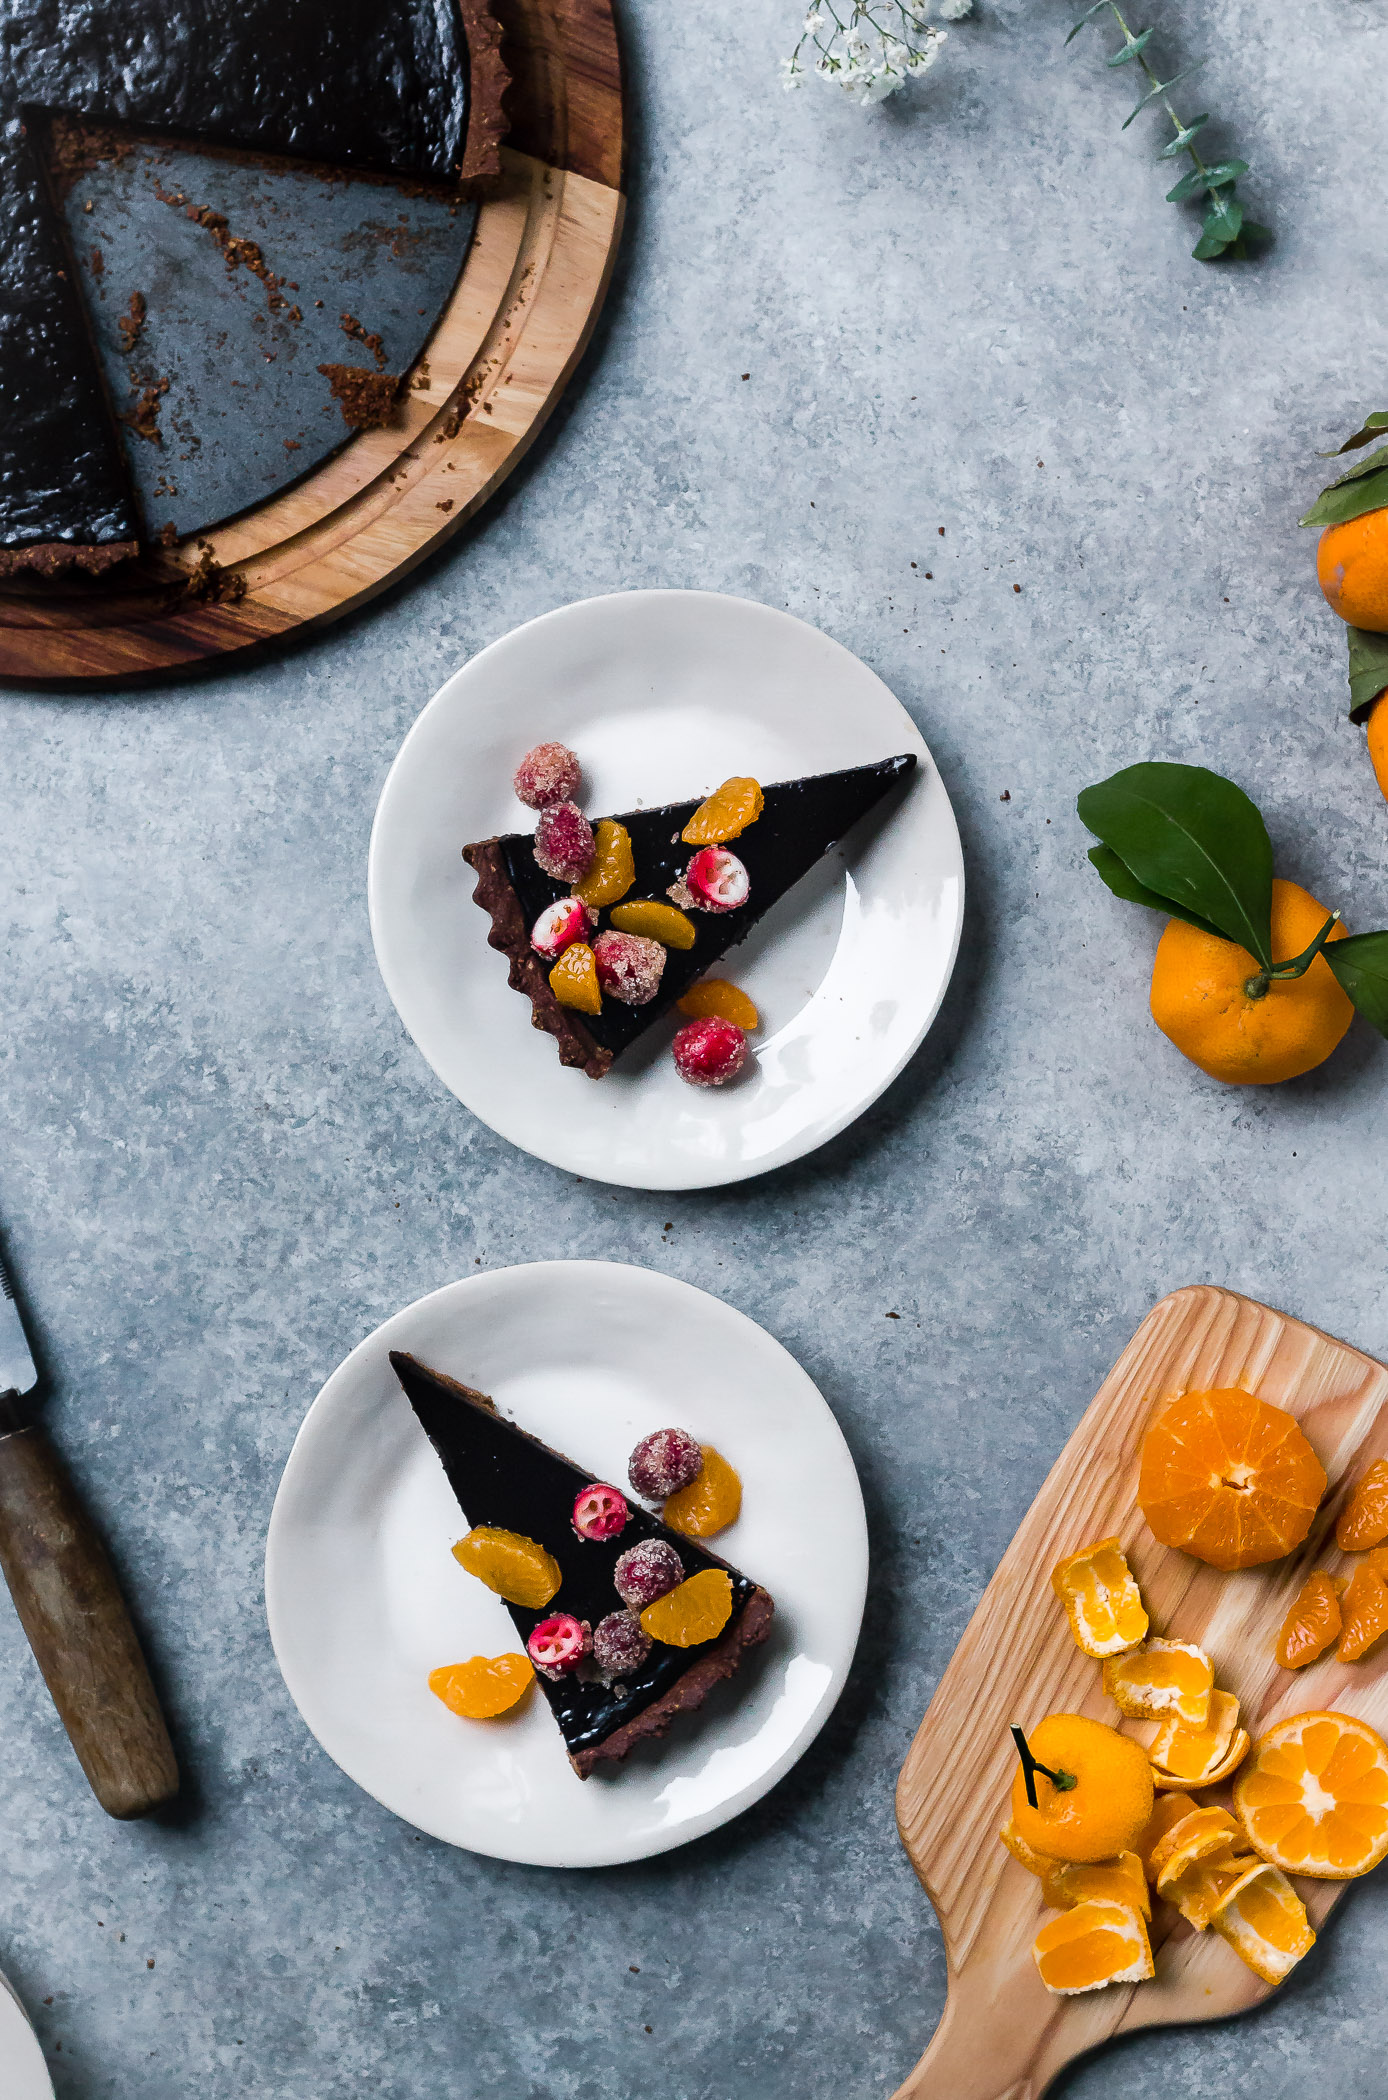 slices of dark chocolate tart with cinnamon sugared cranberry and satsumas